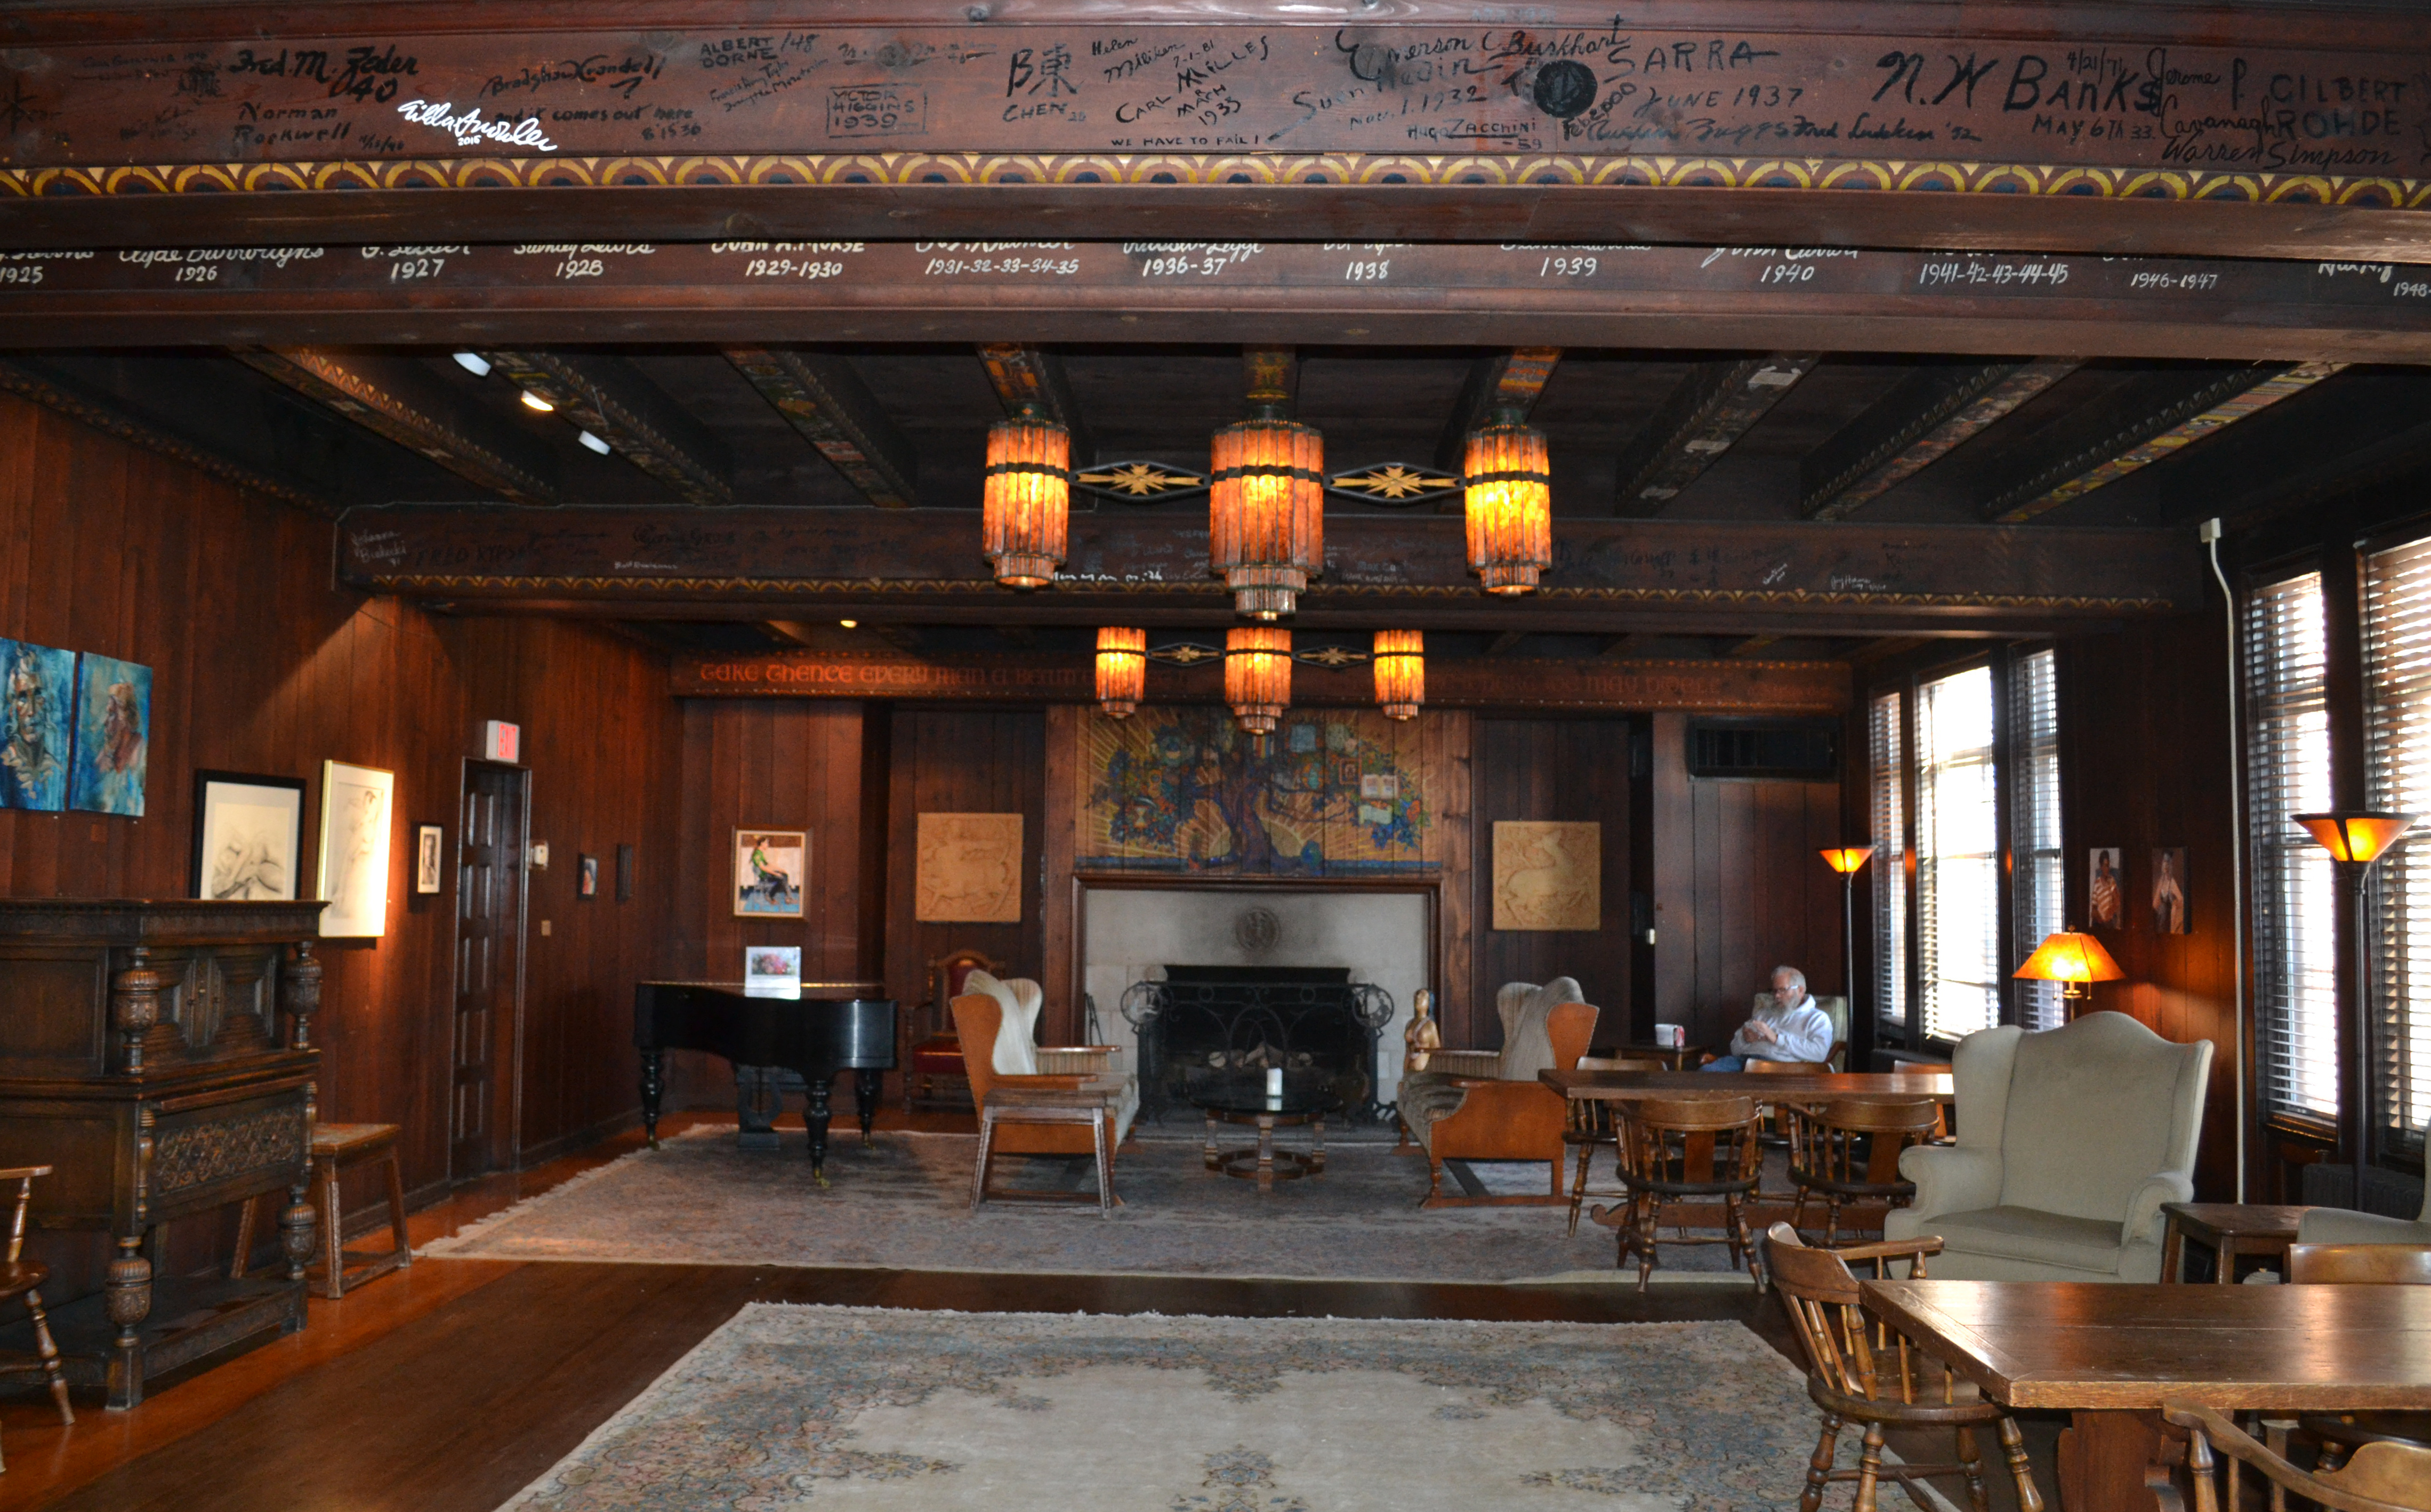 Inside the clubhouse lounge, showing the signatures of famous artists on the ceiling beams.